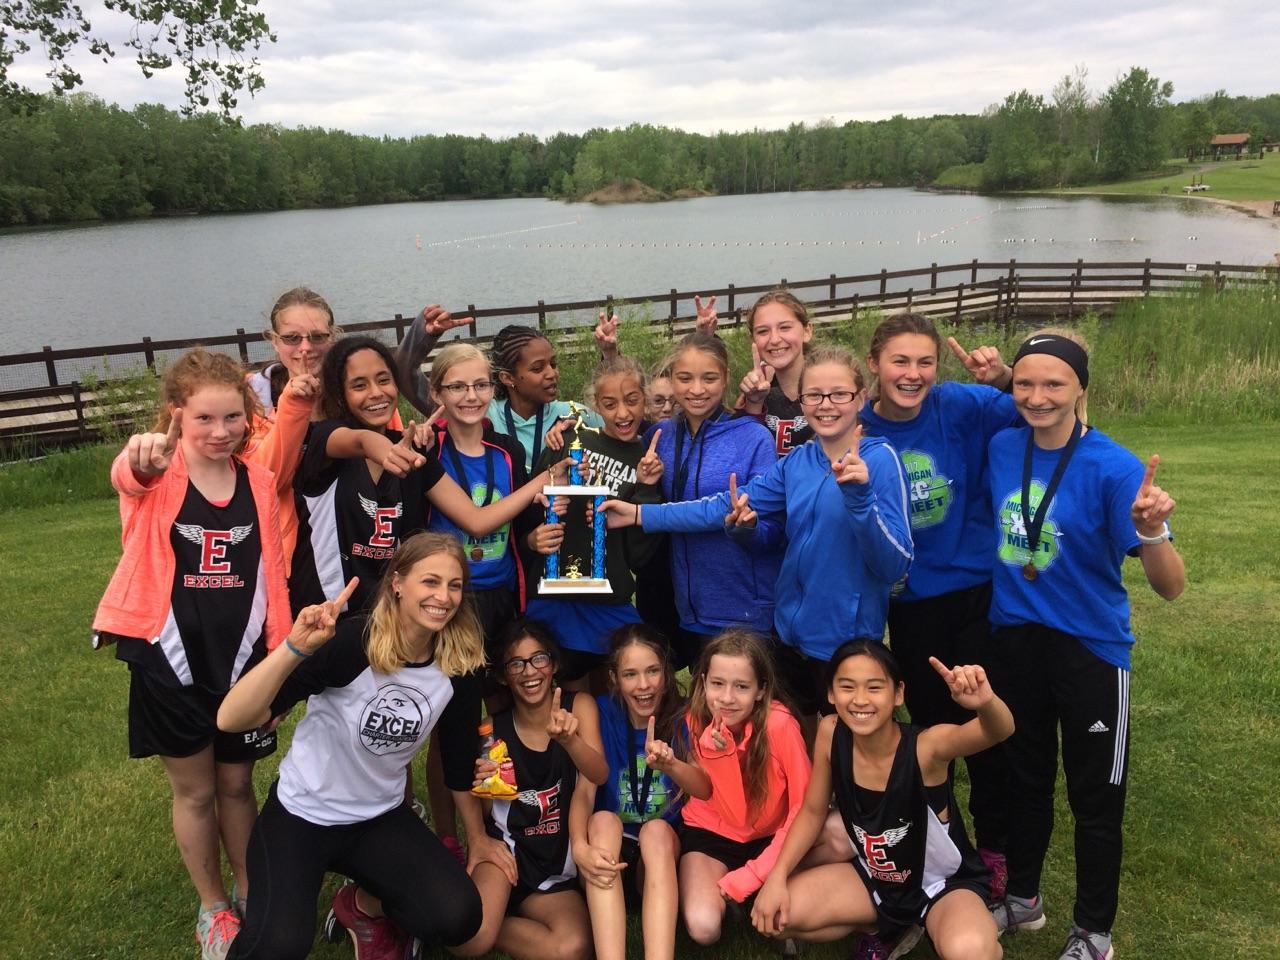 Girls xc wins st state championship in school history also exceleaglessports home of excel eagles athletics rh wordpress